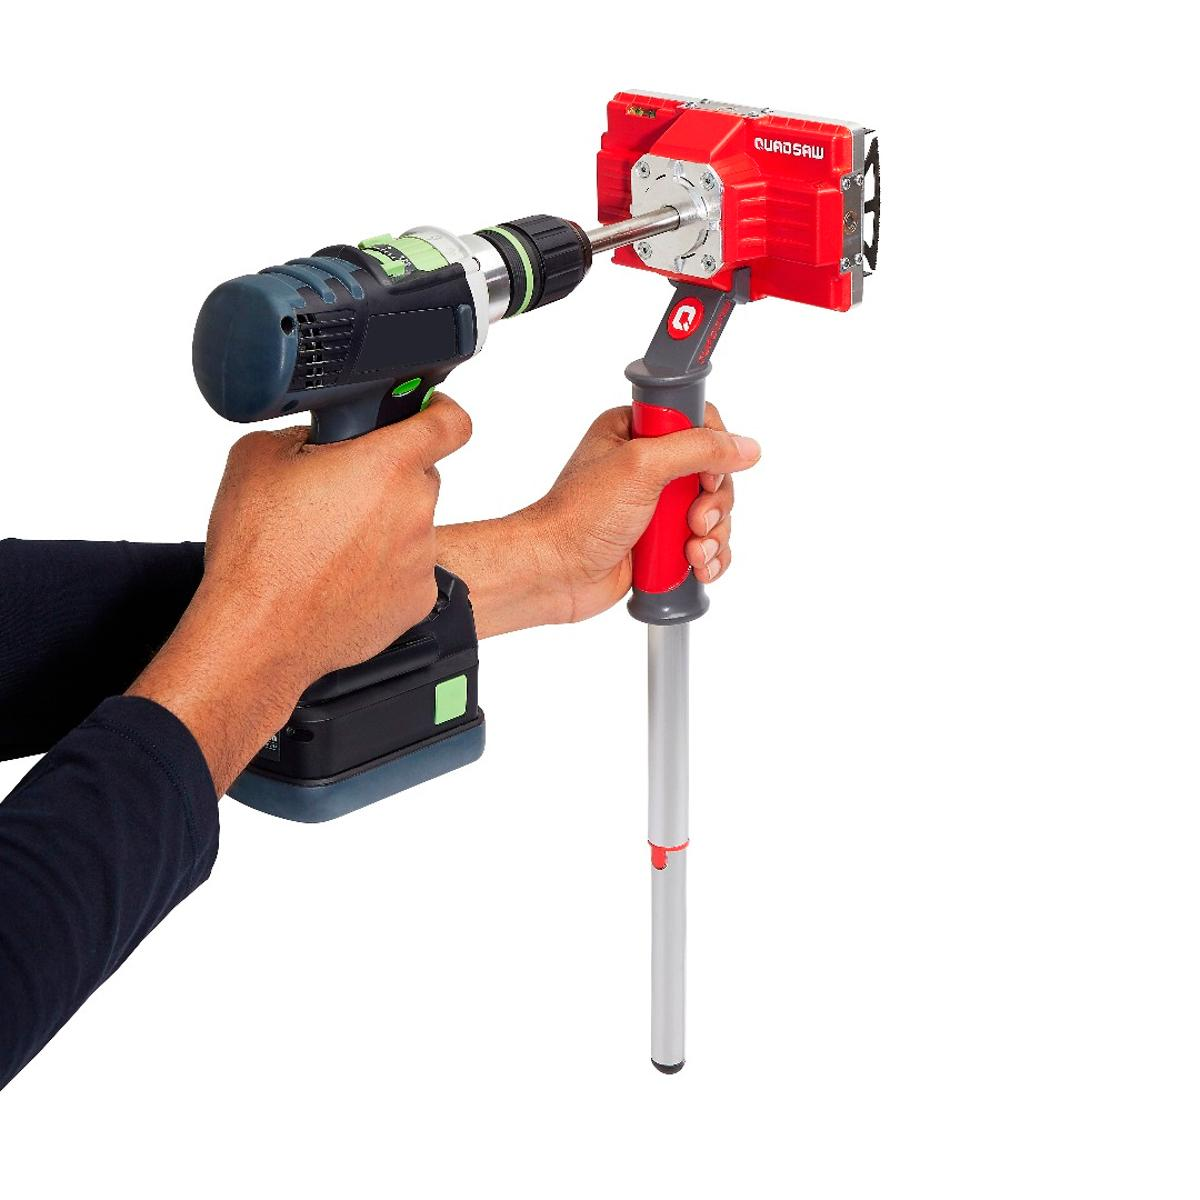 Quadsaw: attaches to the end of a drill to create perfectly square or rectangular holes in plaster walls